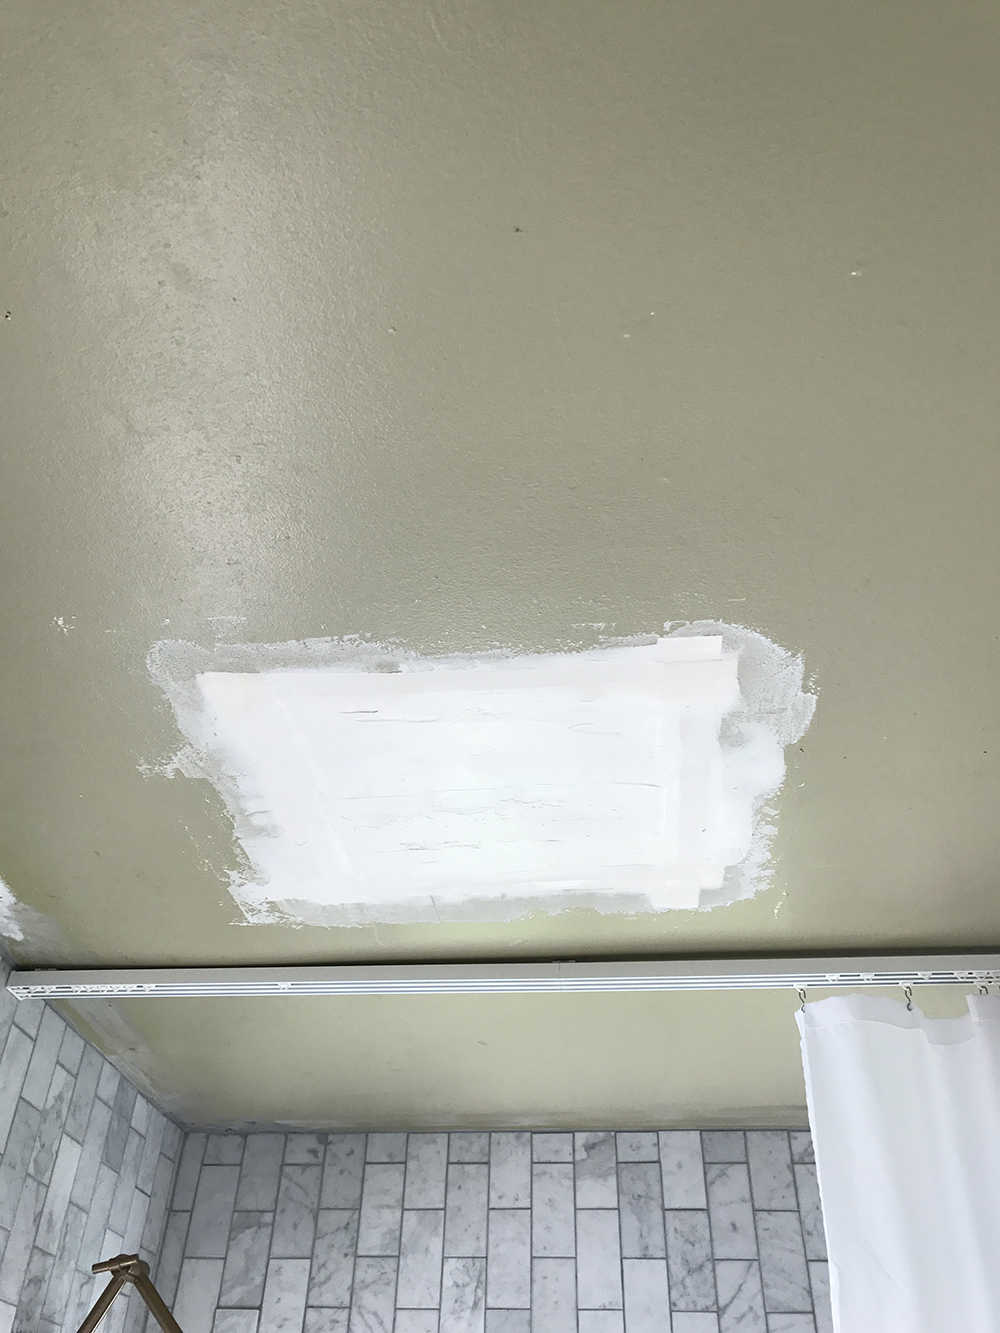 Patching the Ceiling